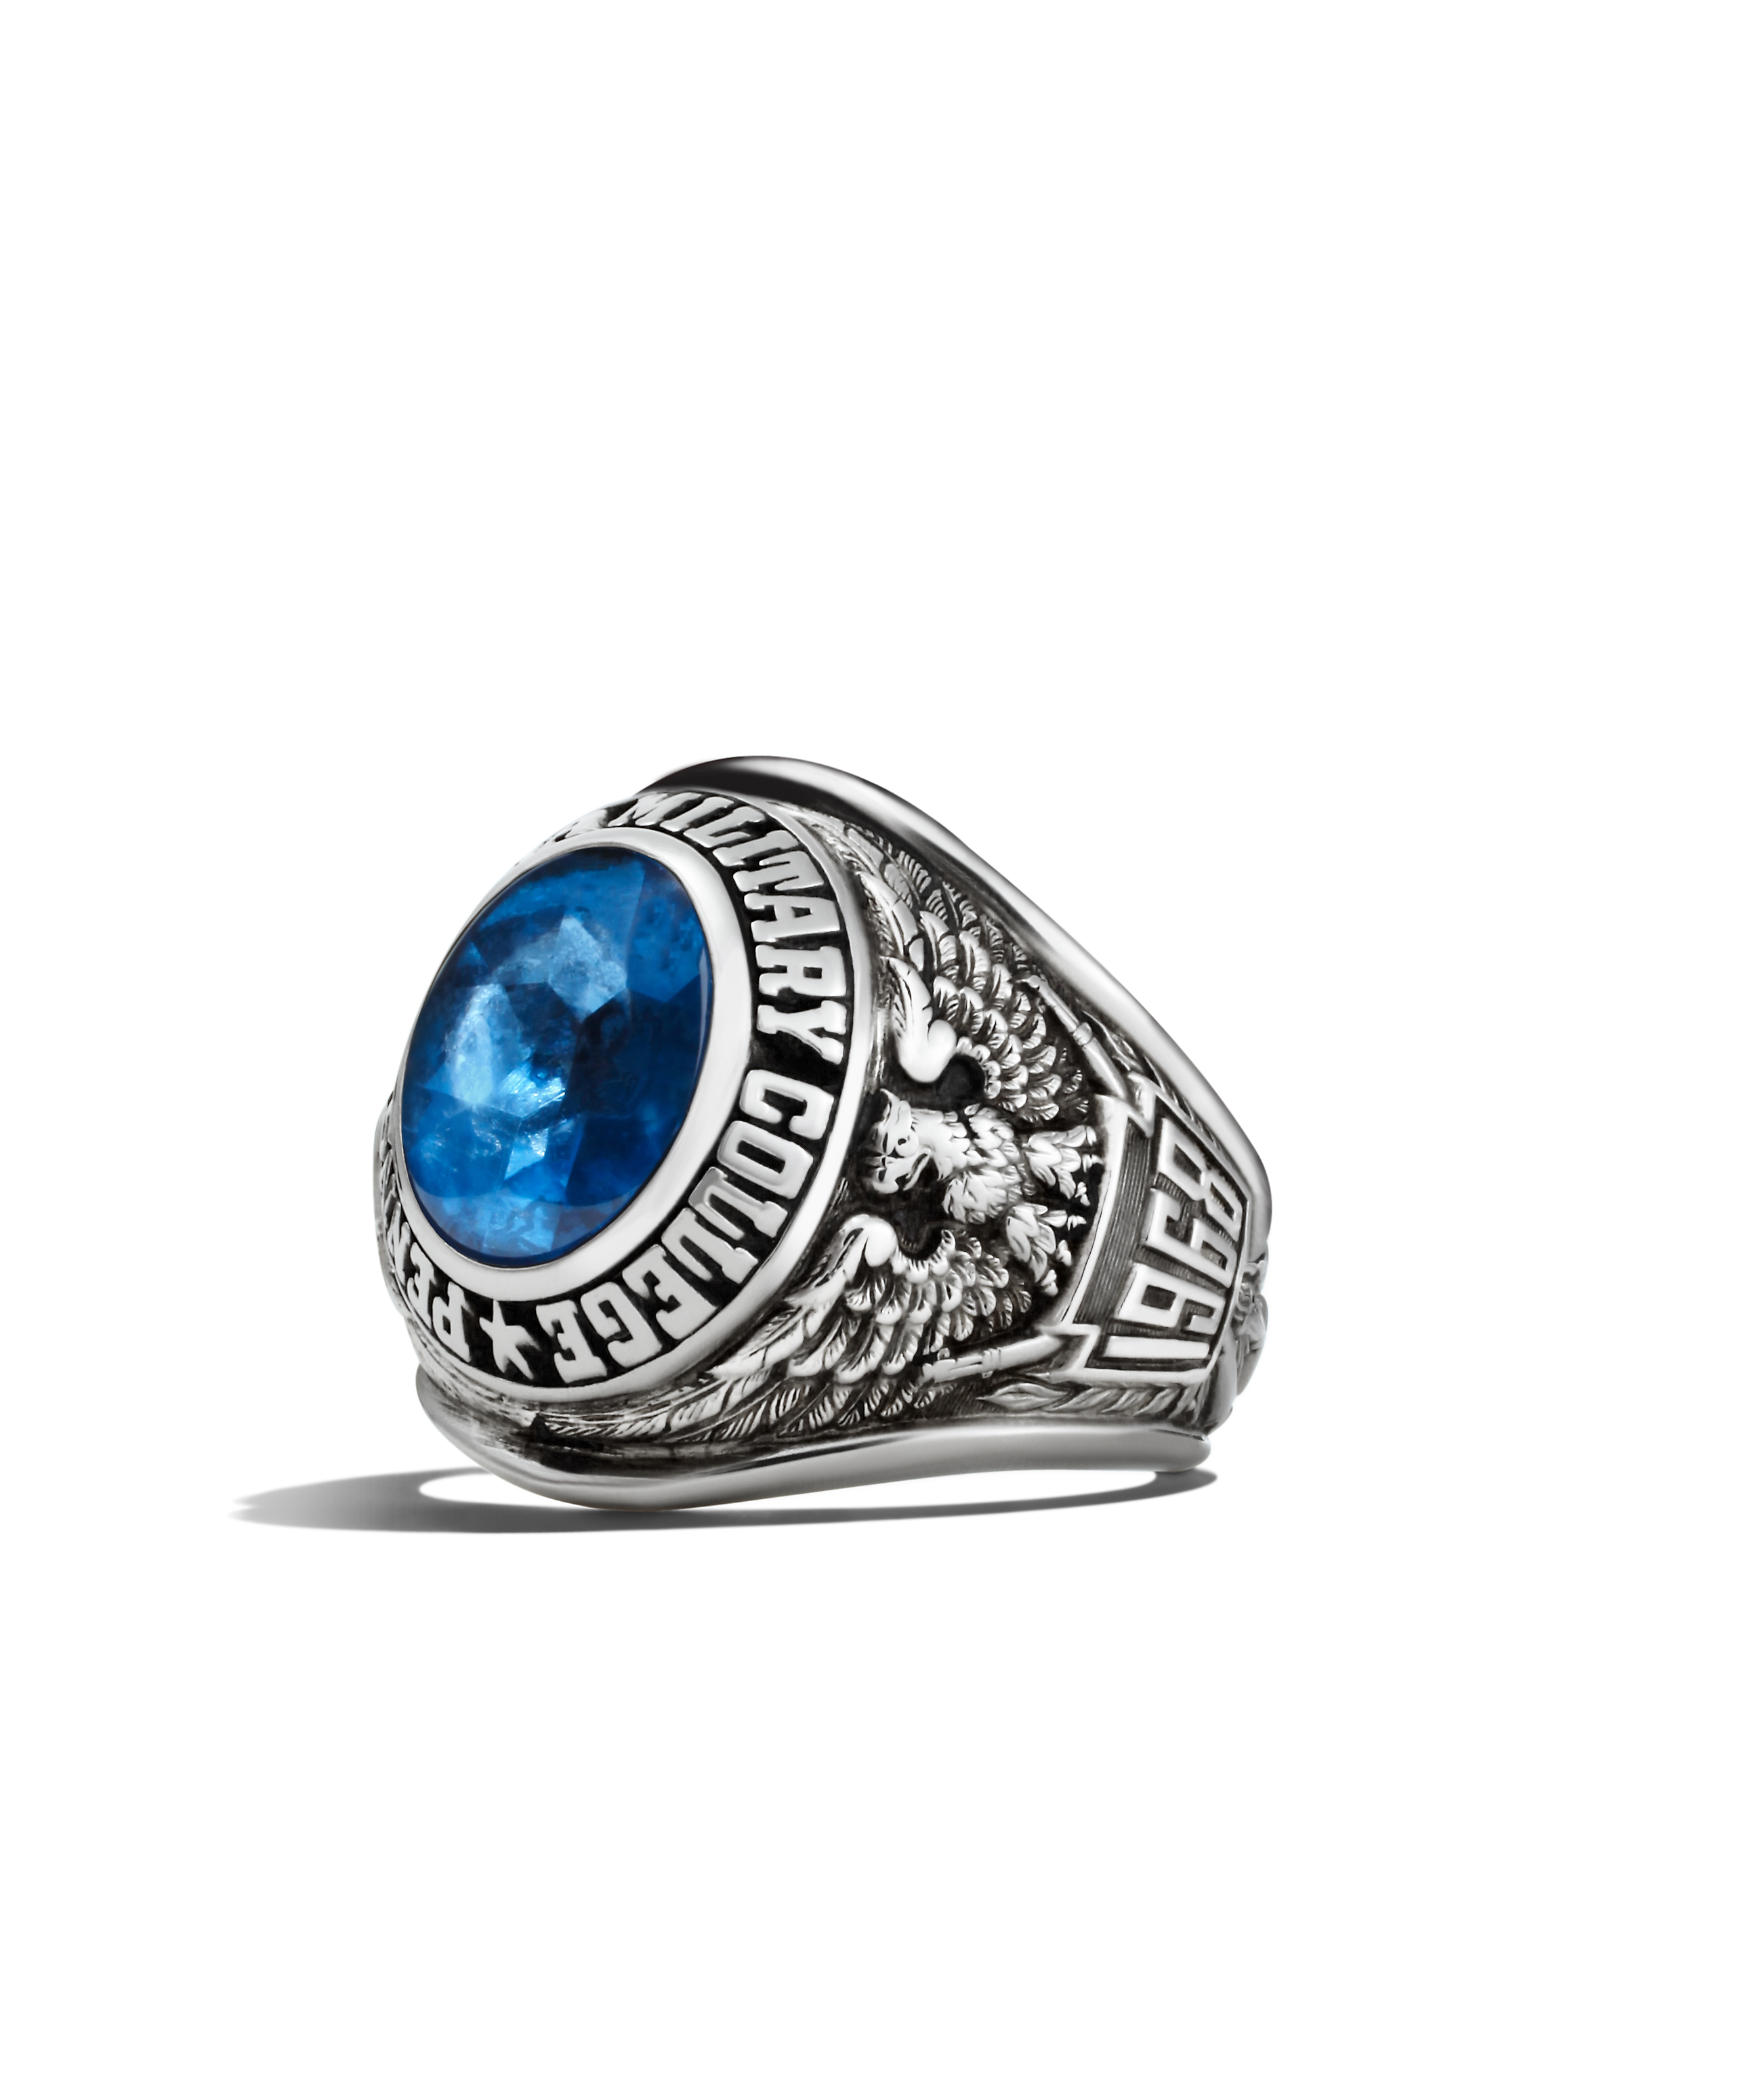 Symbolism of the class ring pennsylvania military college ring profile buycottarizona Image collections